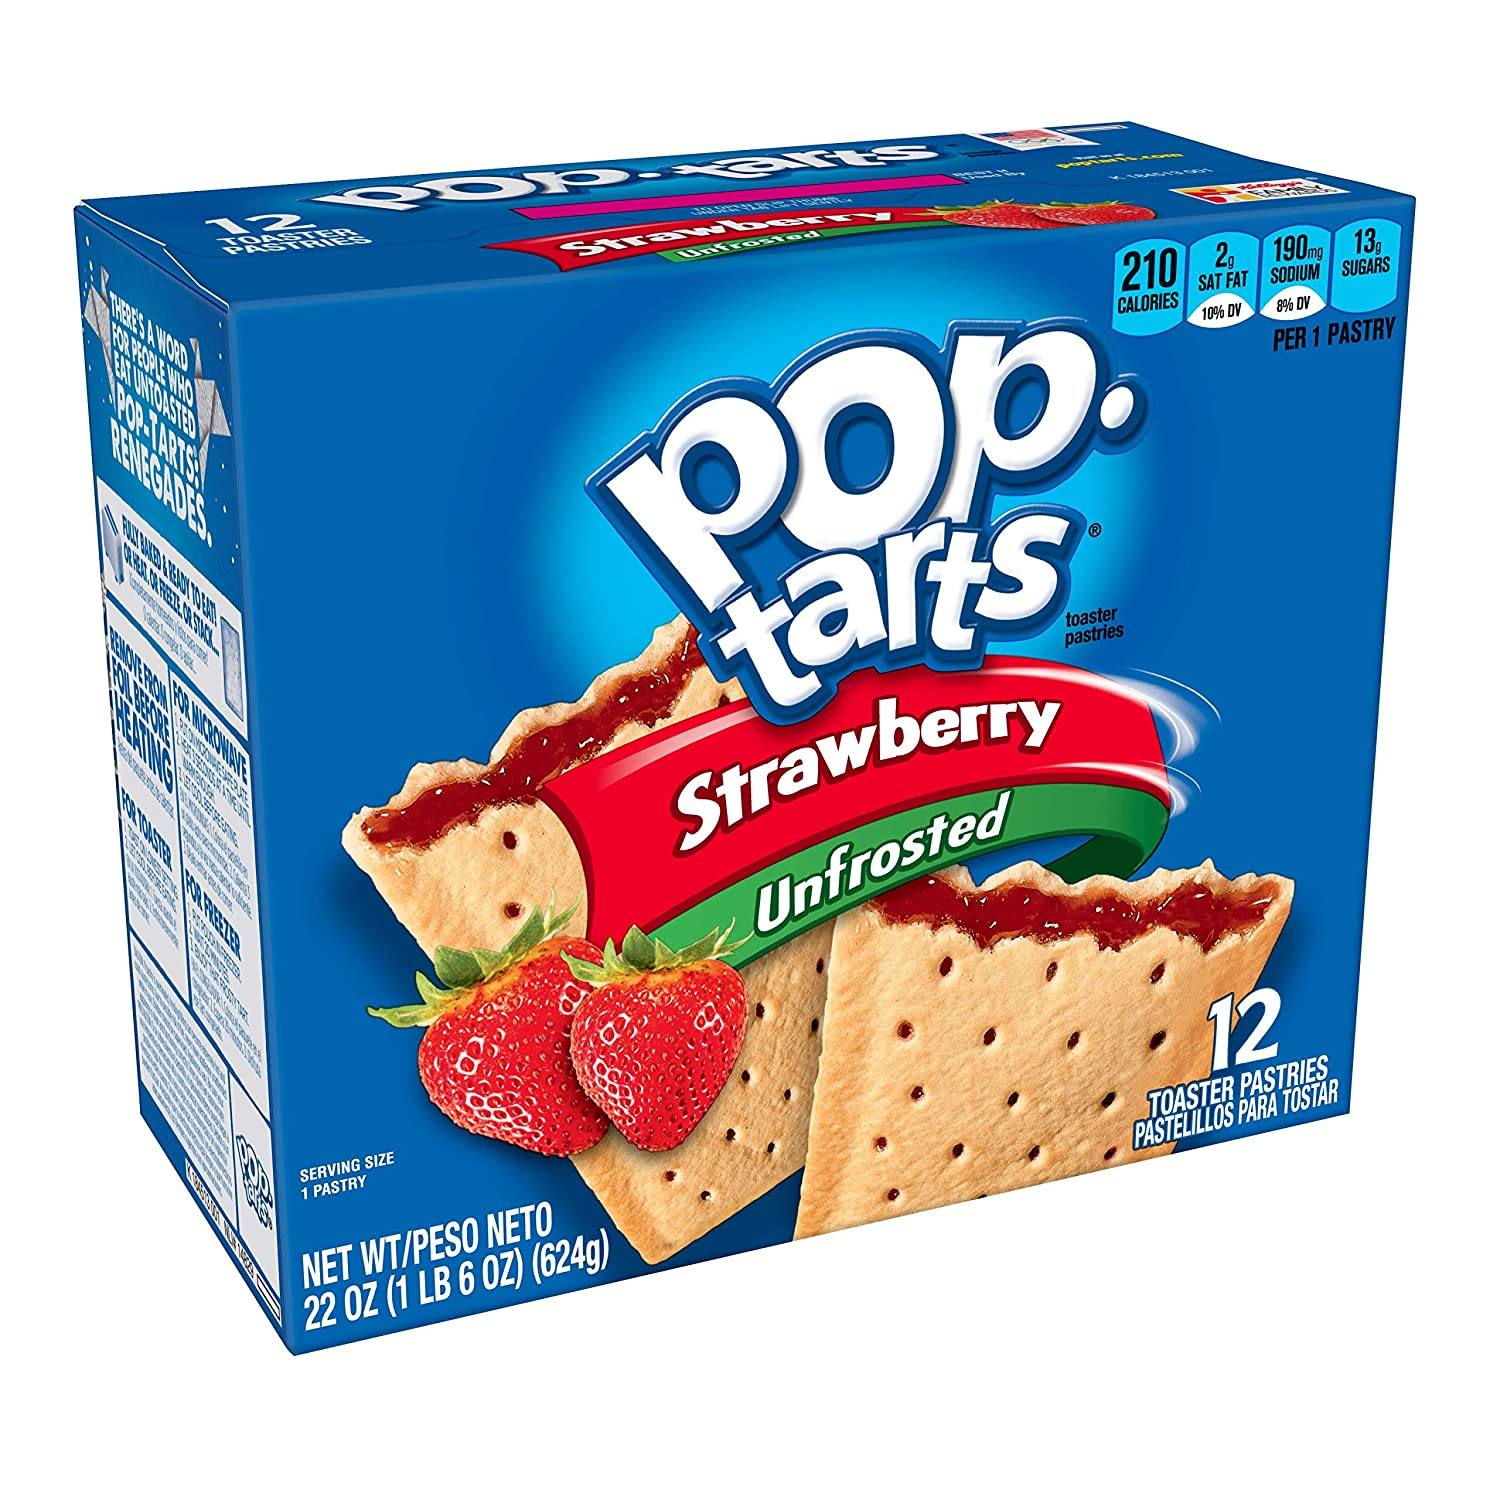 Pop-Tarts Breakfast Toaster Pastries, Unfrosted Strawberry Flavored, 12 Count per pack, 22 Ounce